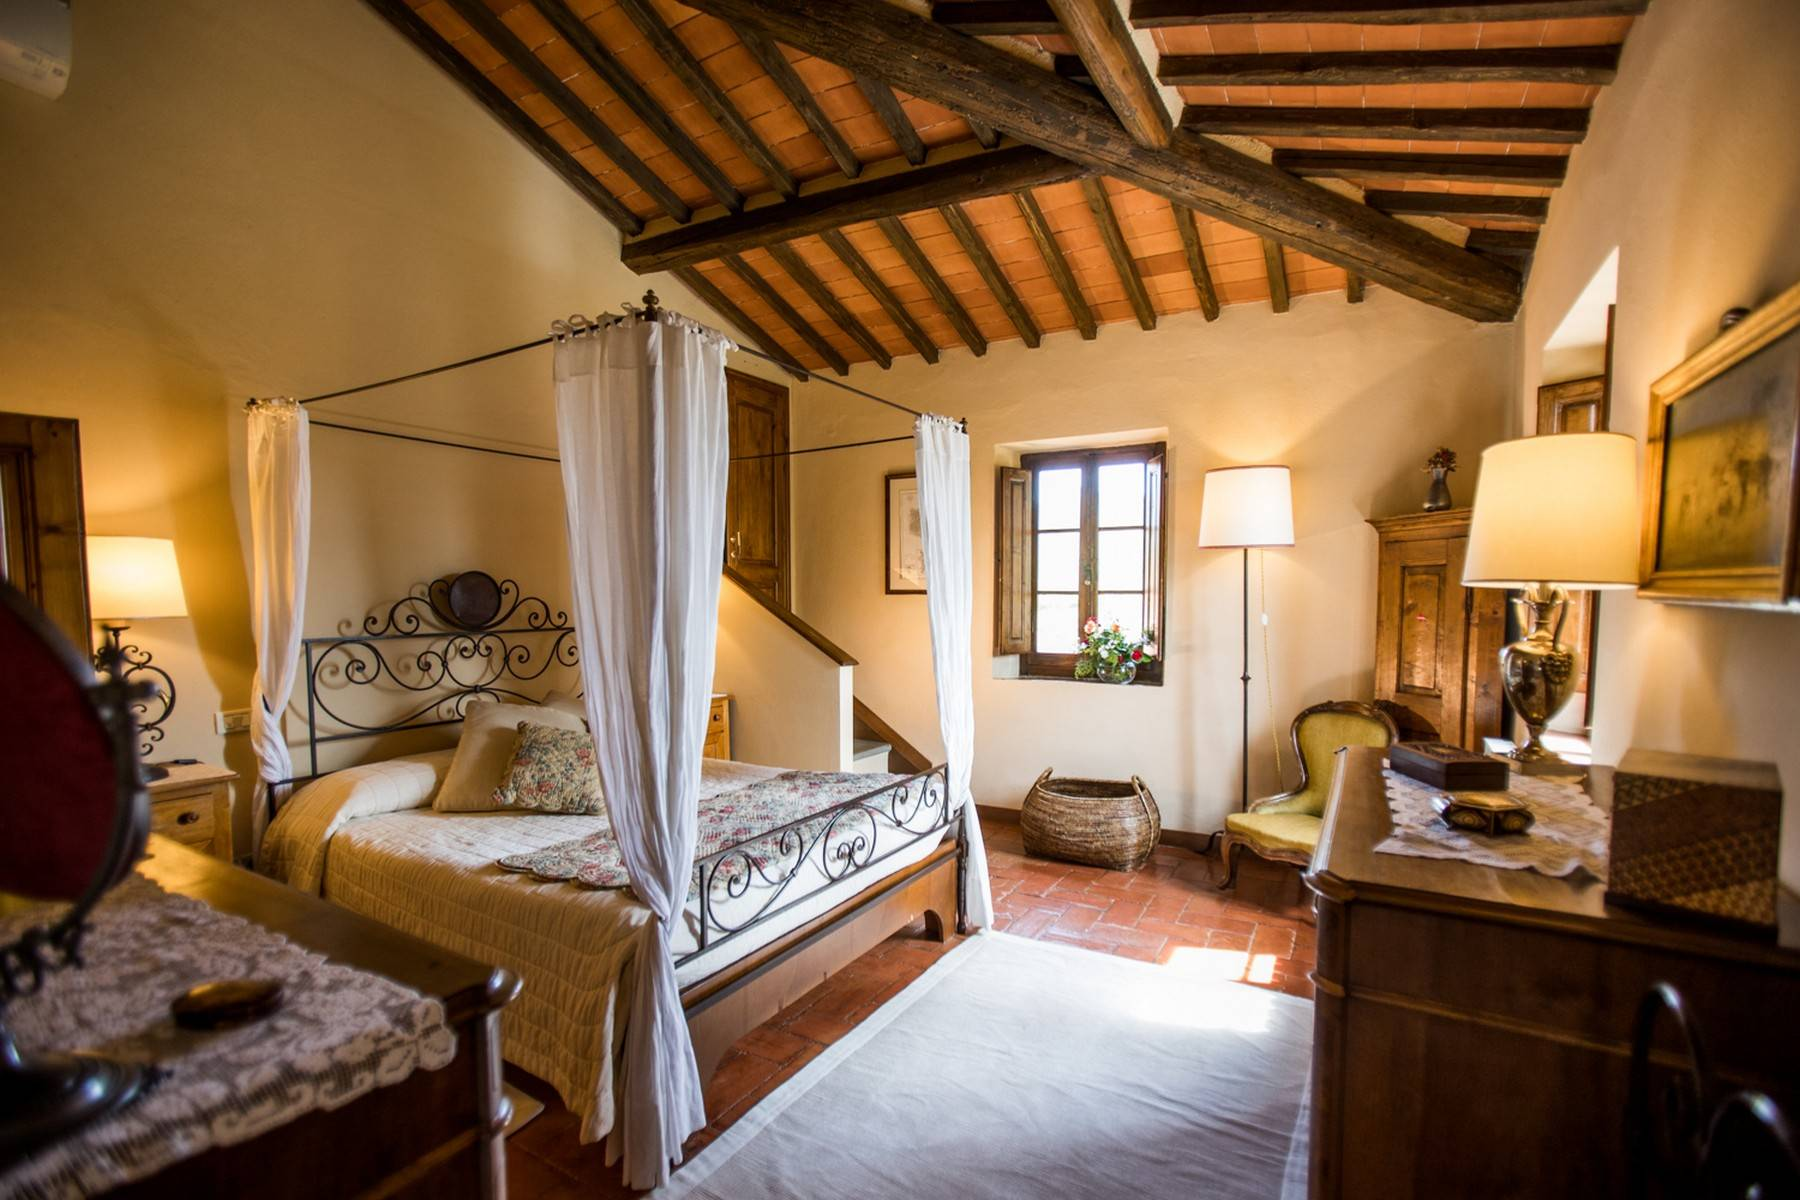 House in the Tuscan Hills for Sale - 5